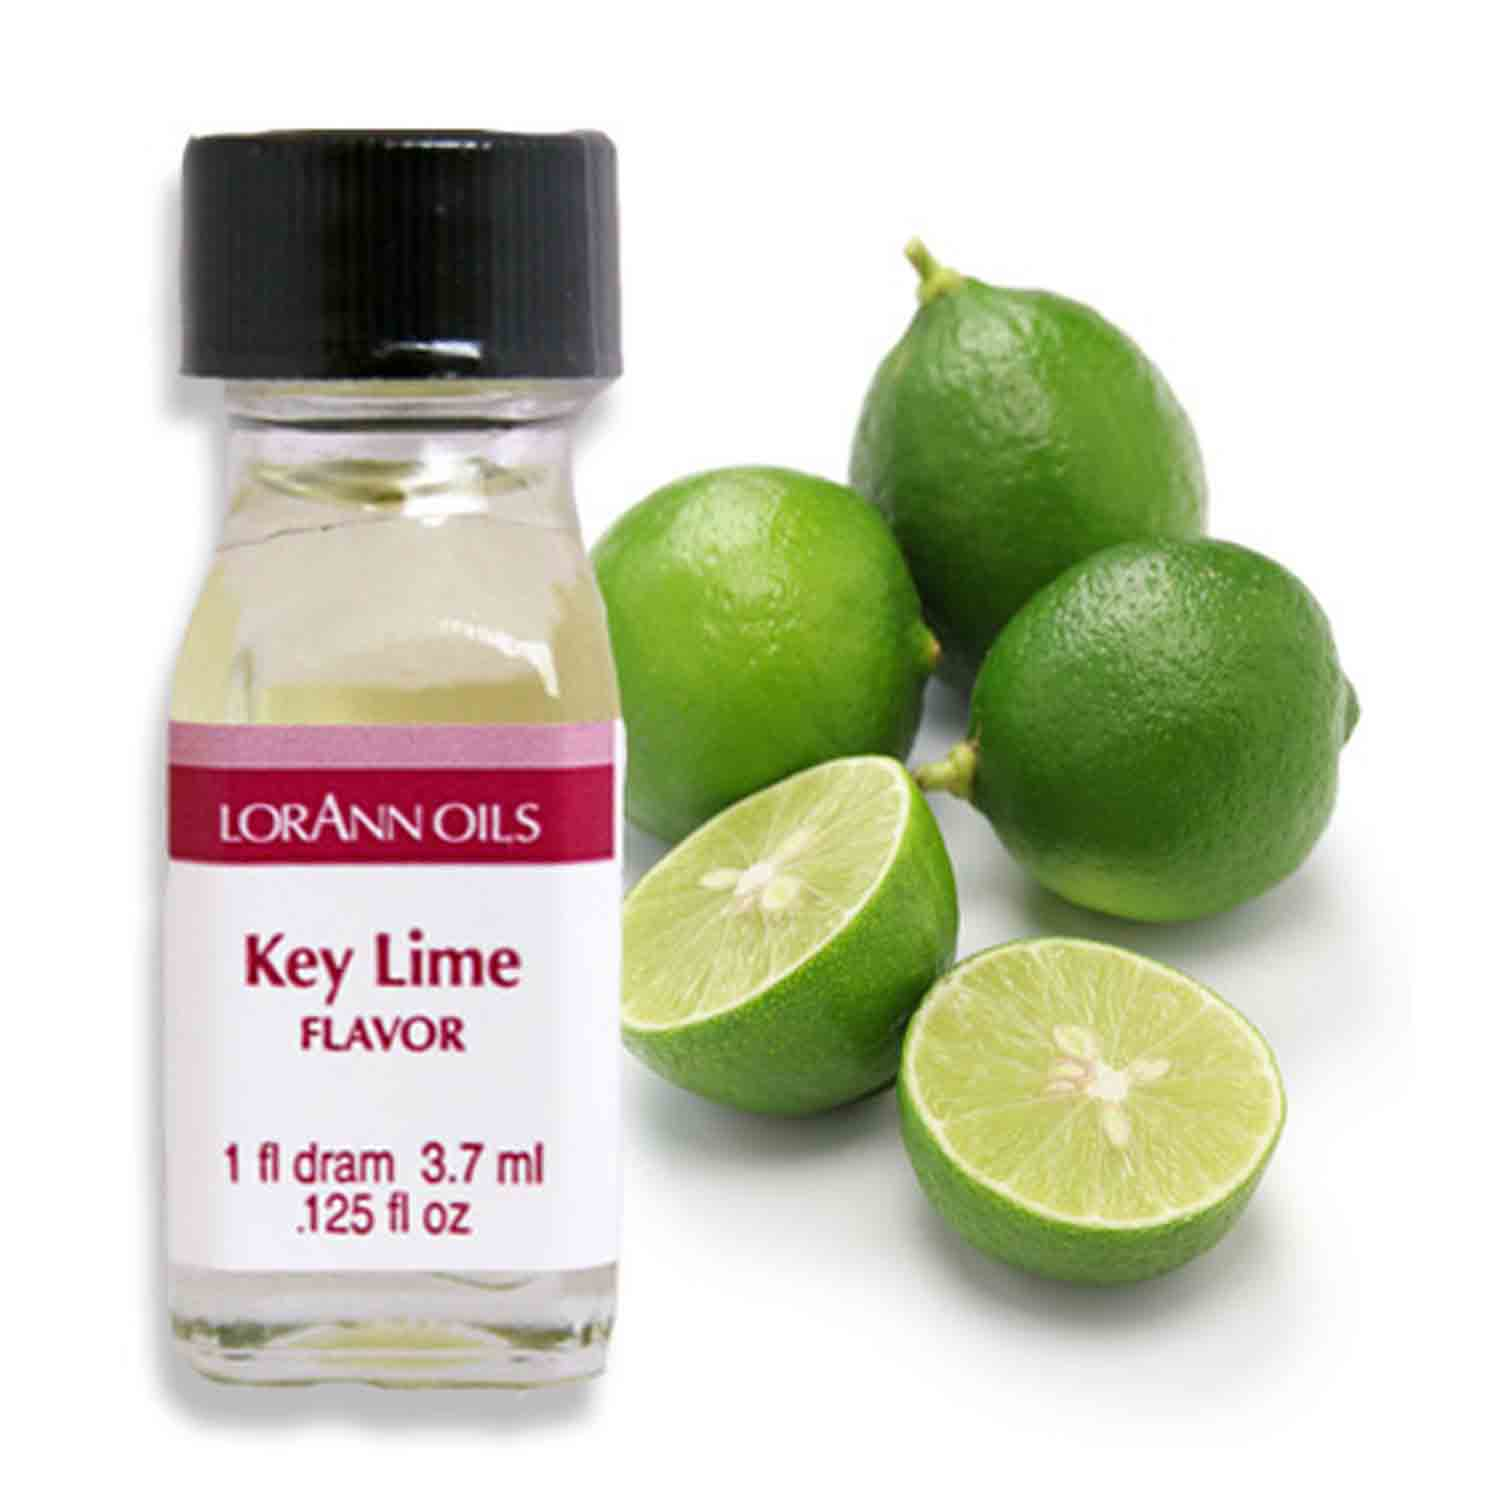 Key-Lime Super-Strength Oil